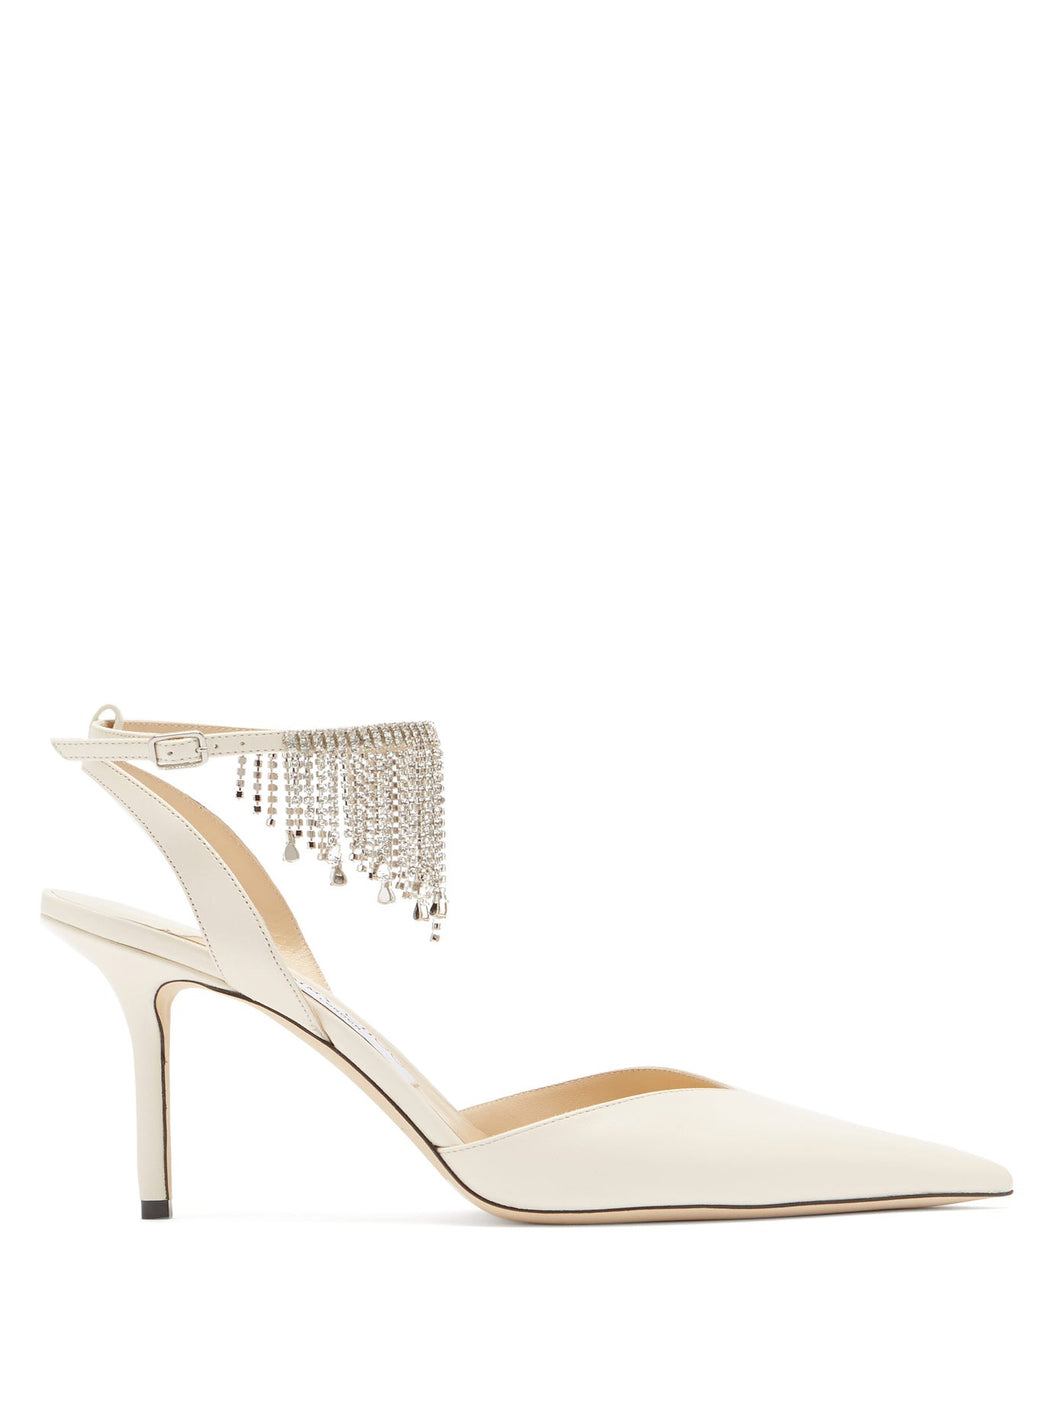 Birtie 85 crystal-embellished leather sandals